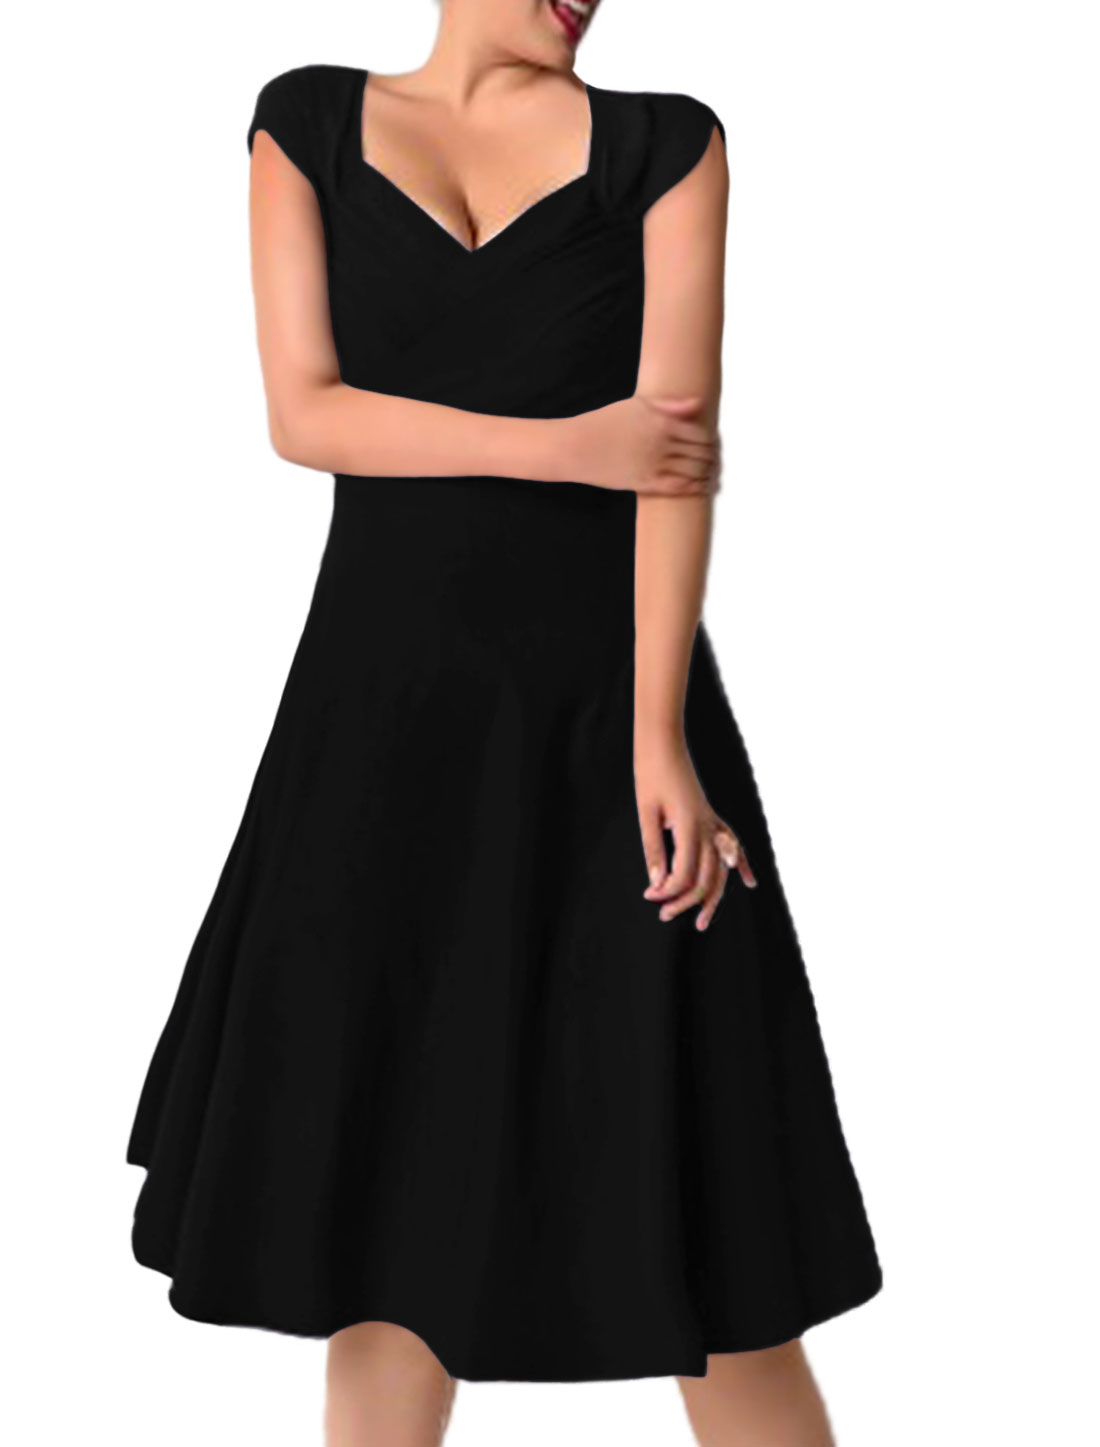 Women Ruched Asymmetric Neck Below Knee Fit and Flare Dress Black M